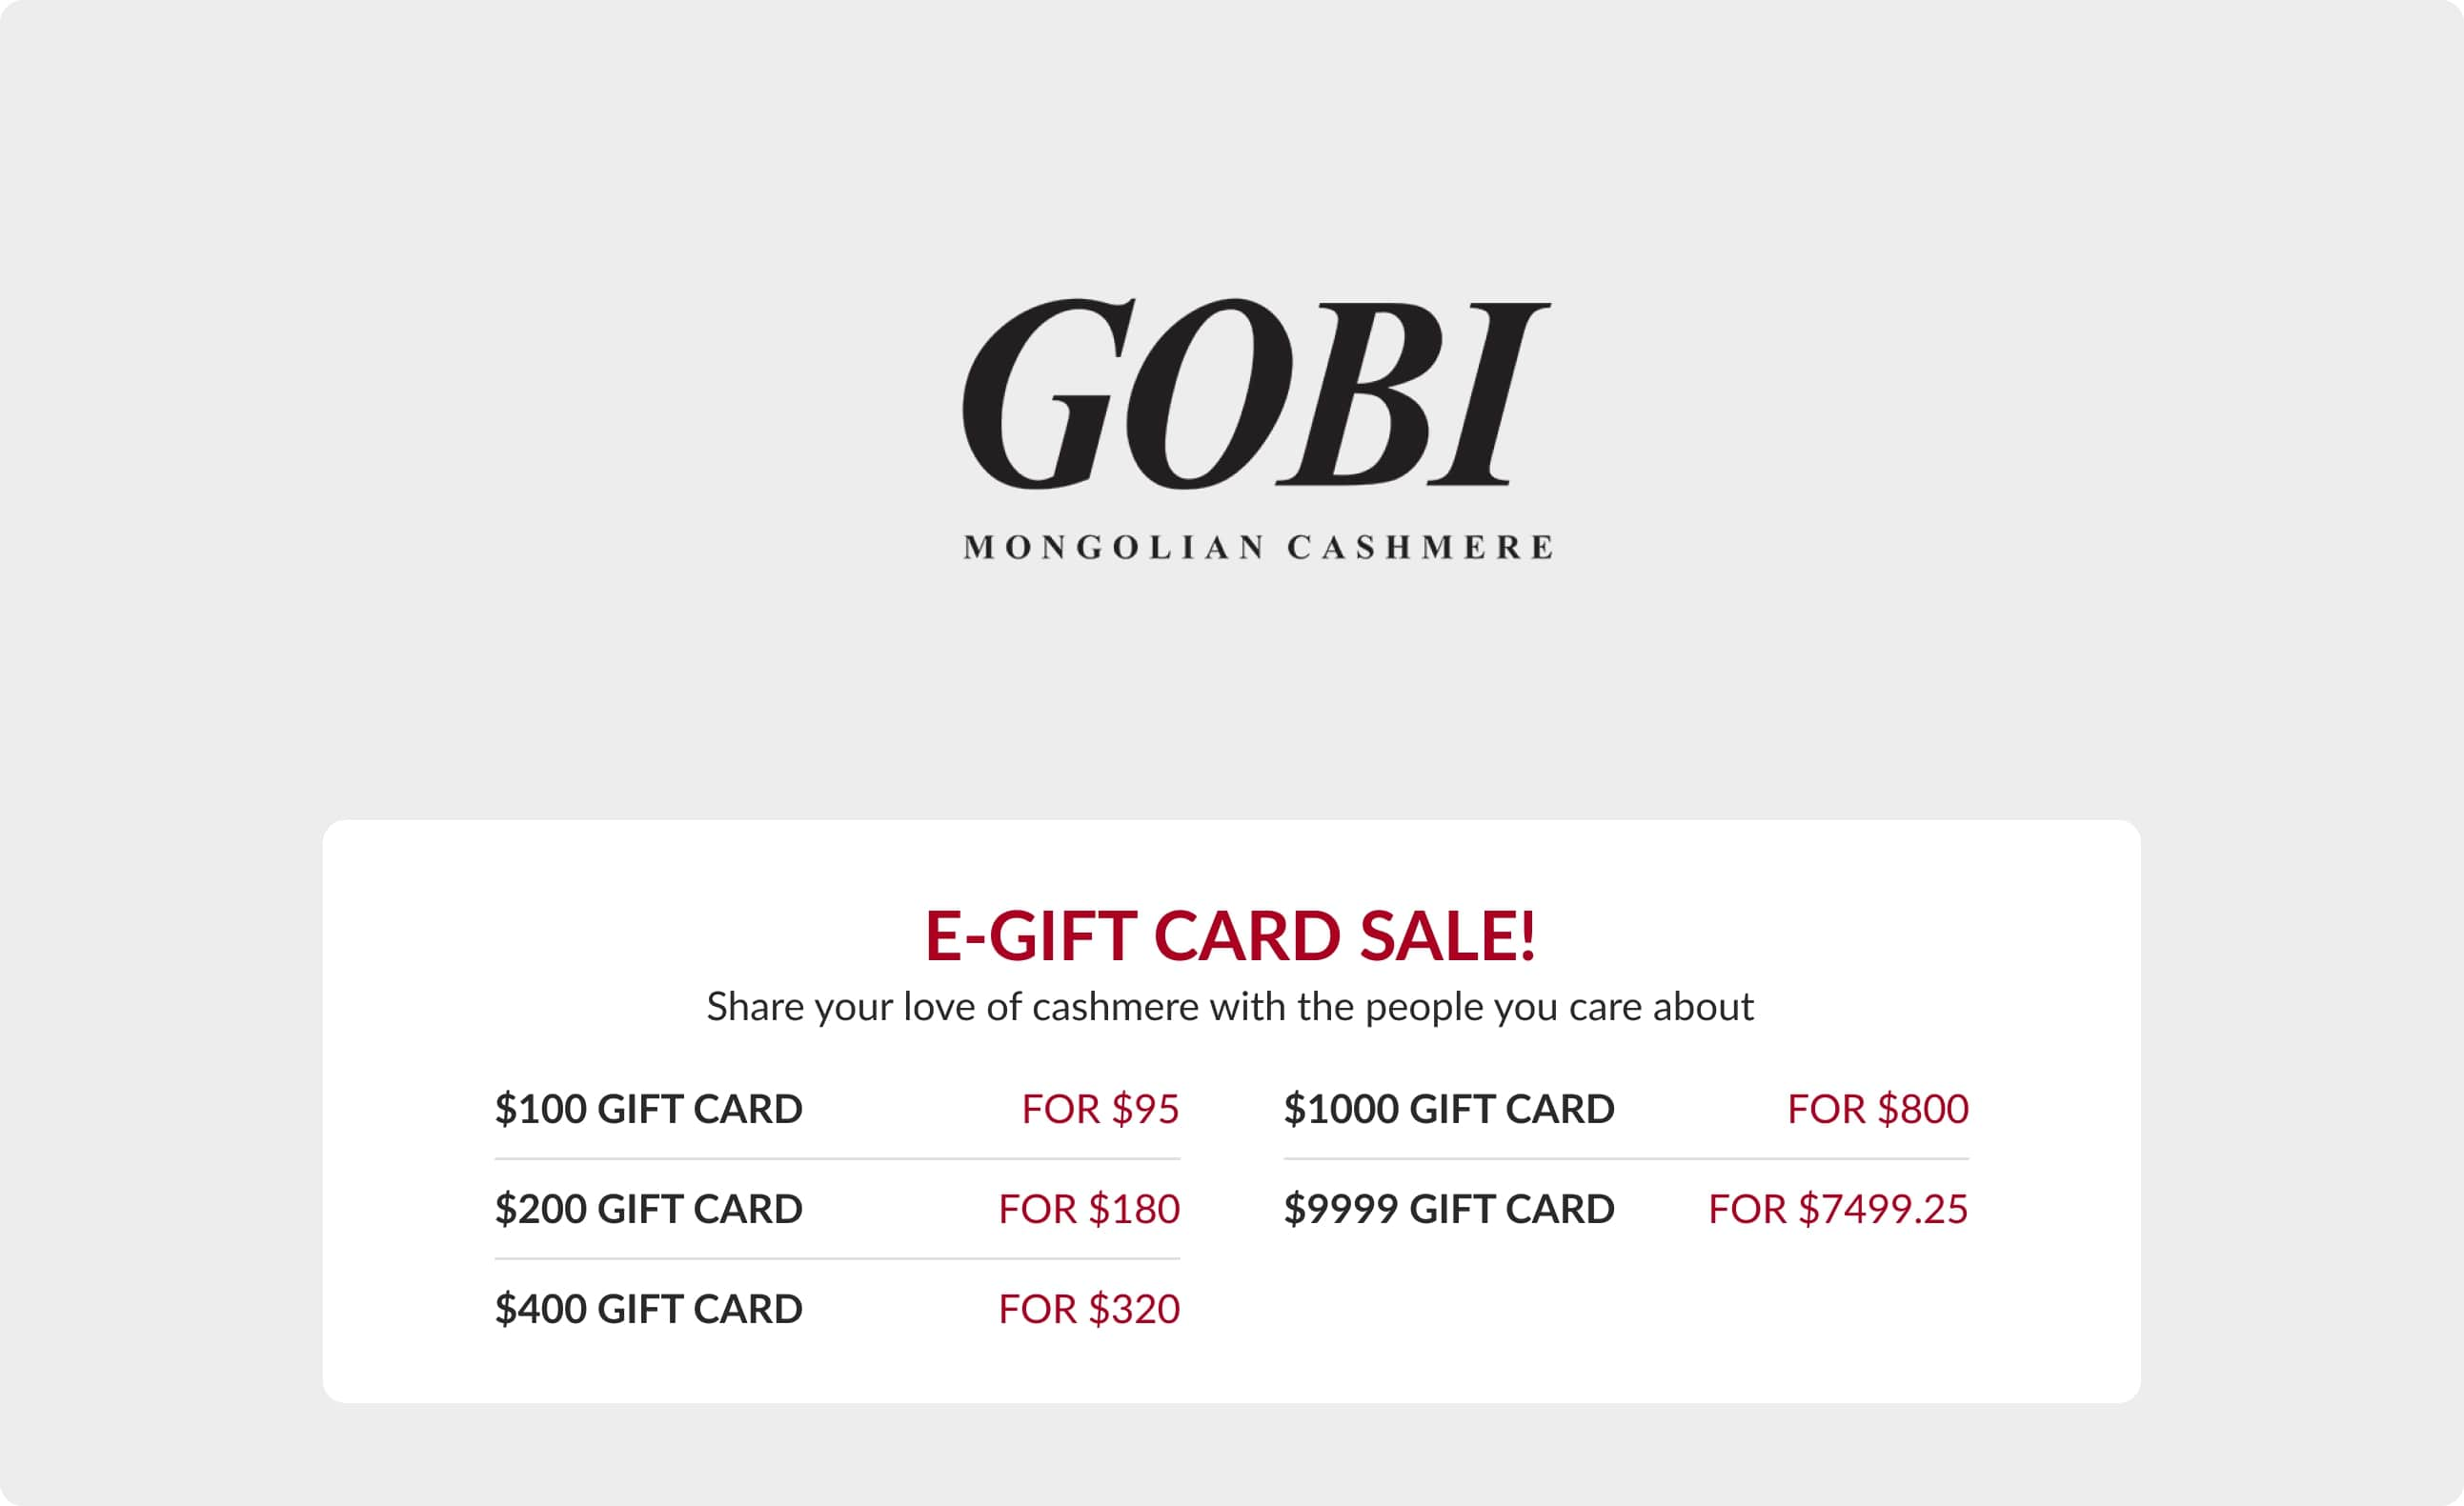 Get $400 gift card for $320